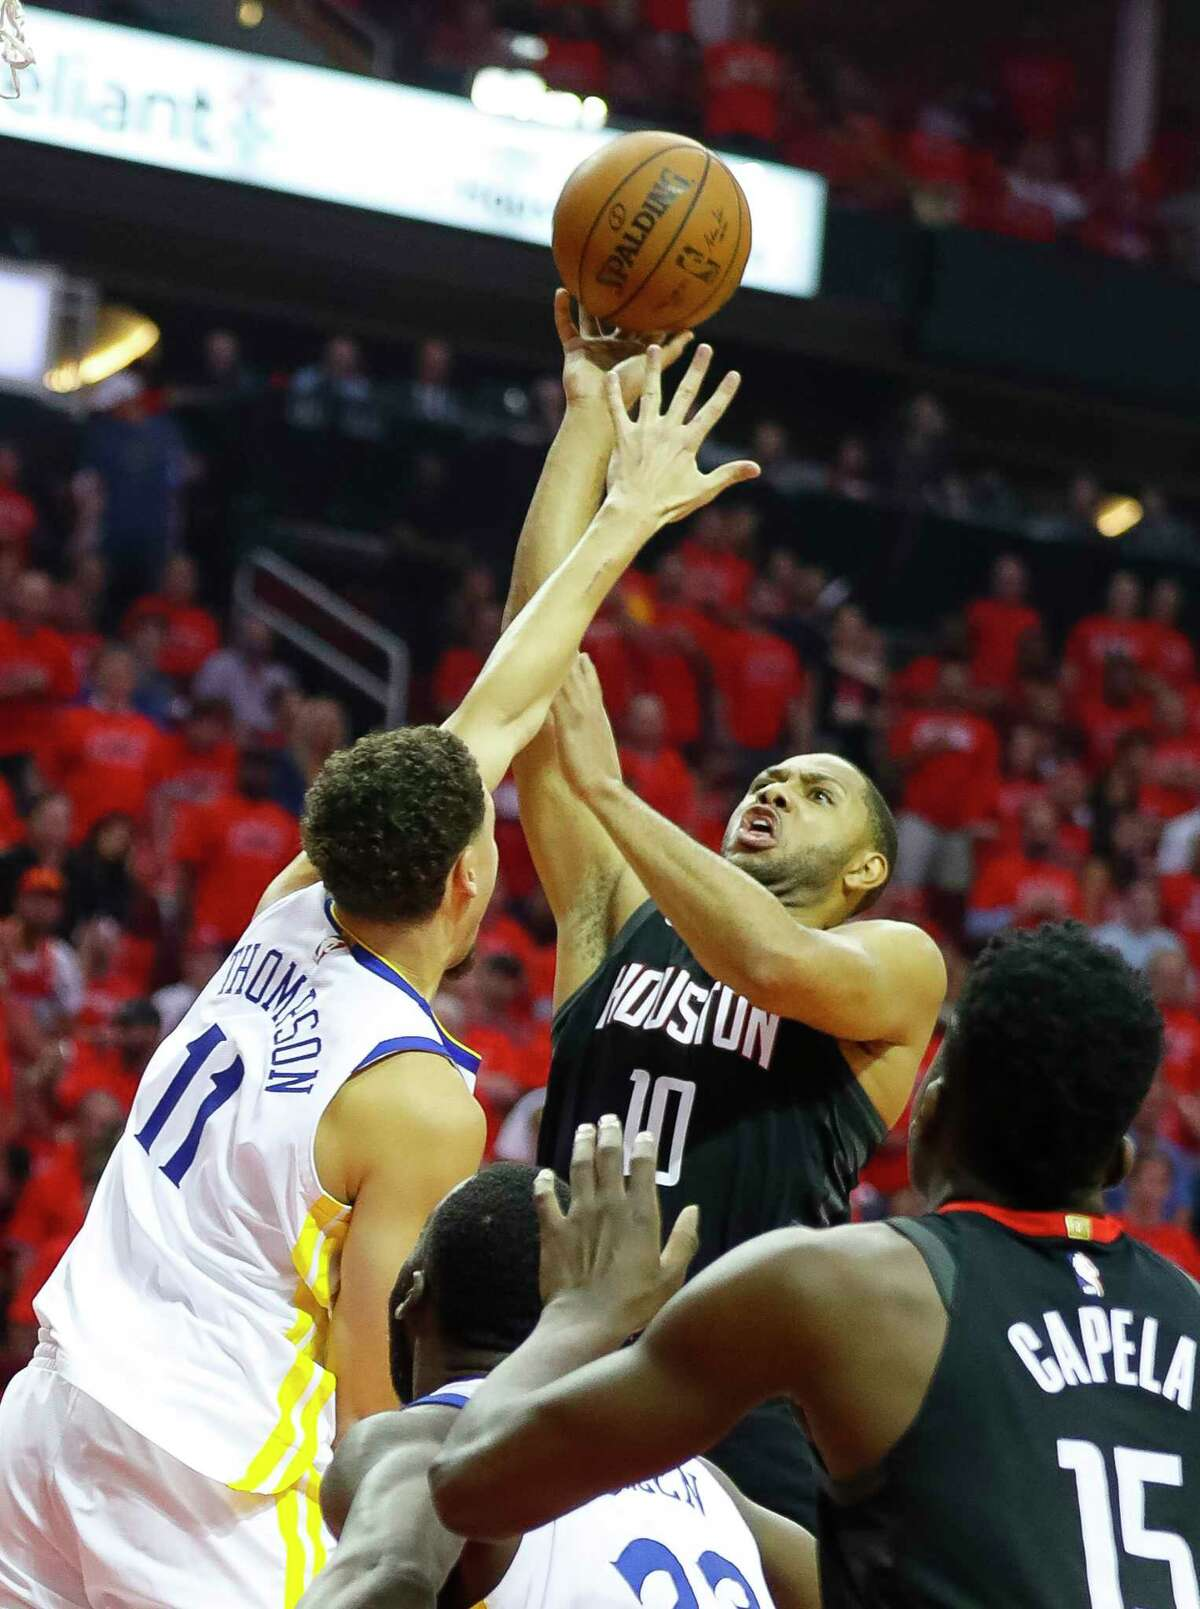 Houston Rockets guard Eric Gordon (10) shoots over Golden State Warriors guard Klay Thompson (11) during Game 7 of the NBA Western Conference Finals at Toyota Center on Monday, May 28, 2018, in Houston.